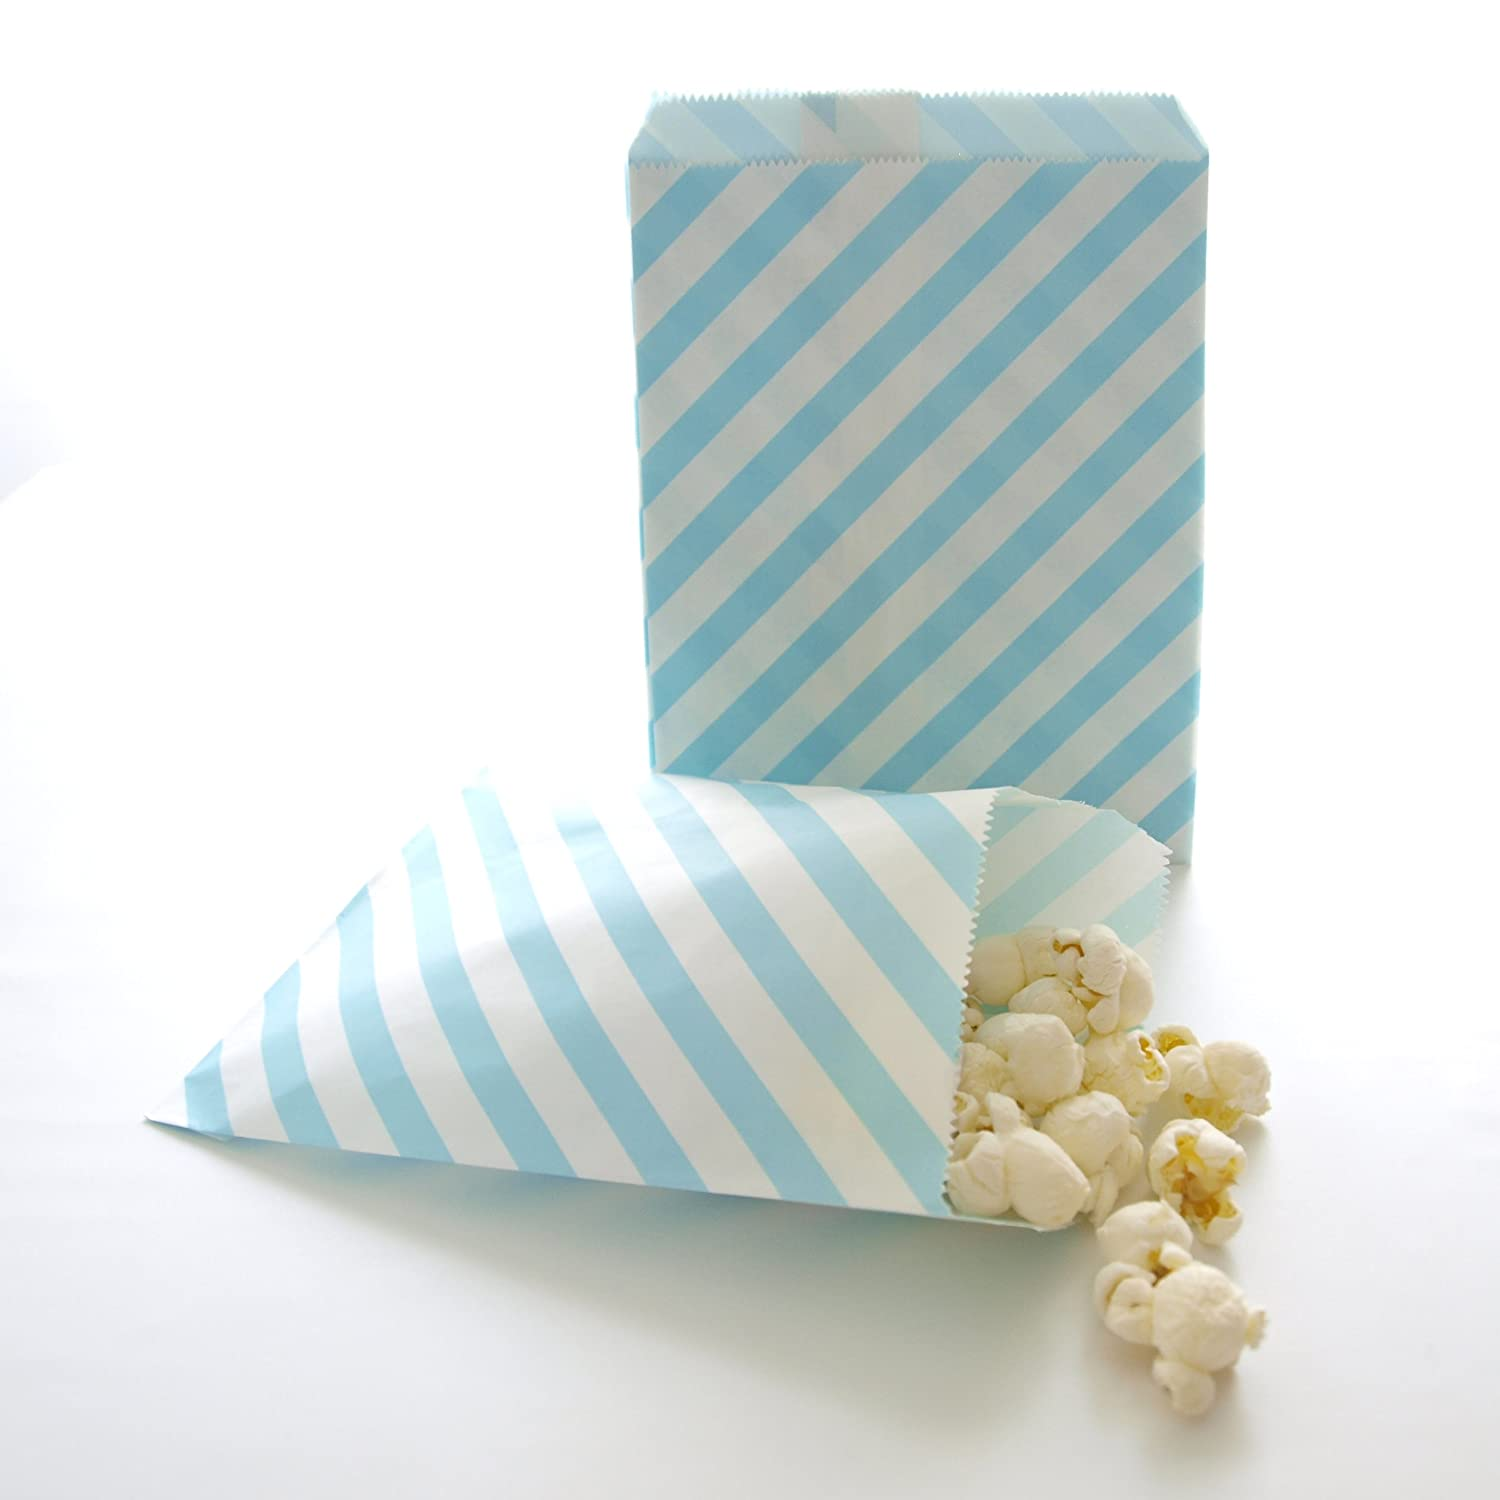 Amazon.com: Blue Paper Bags, Candy Treat Bags, Kids Birthday Favors ...